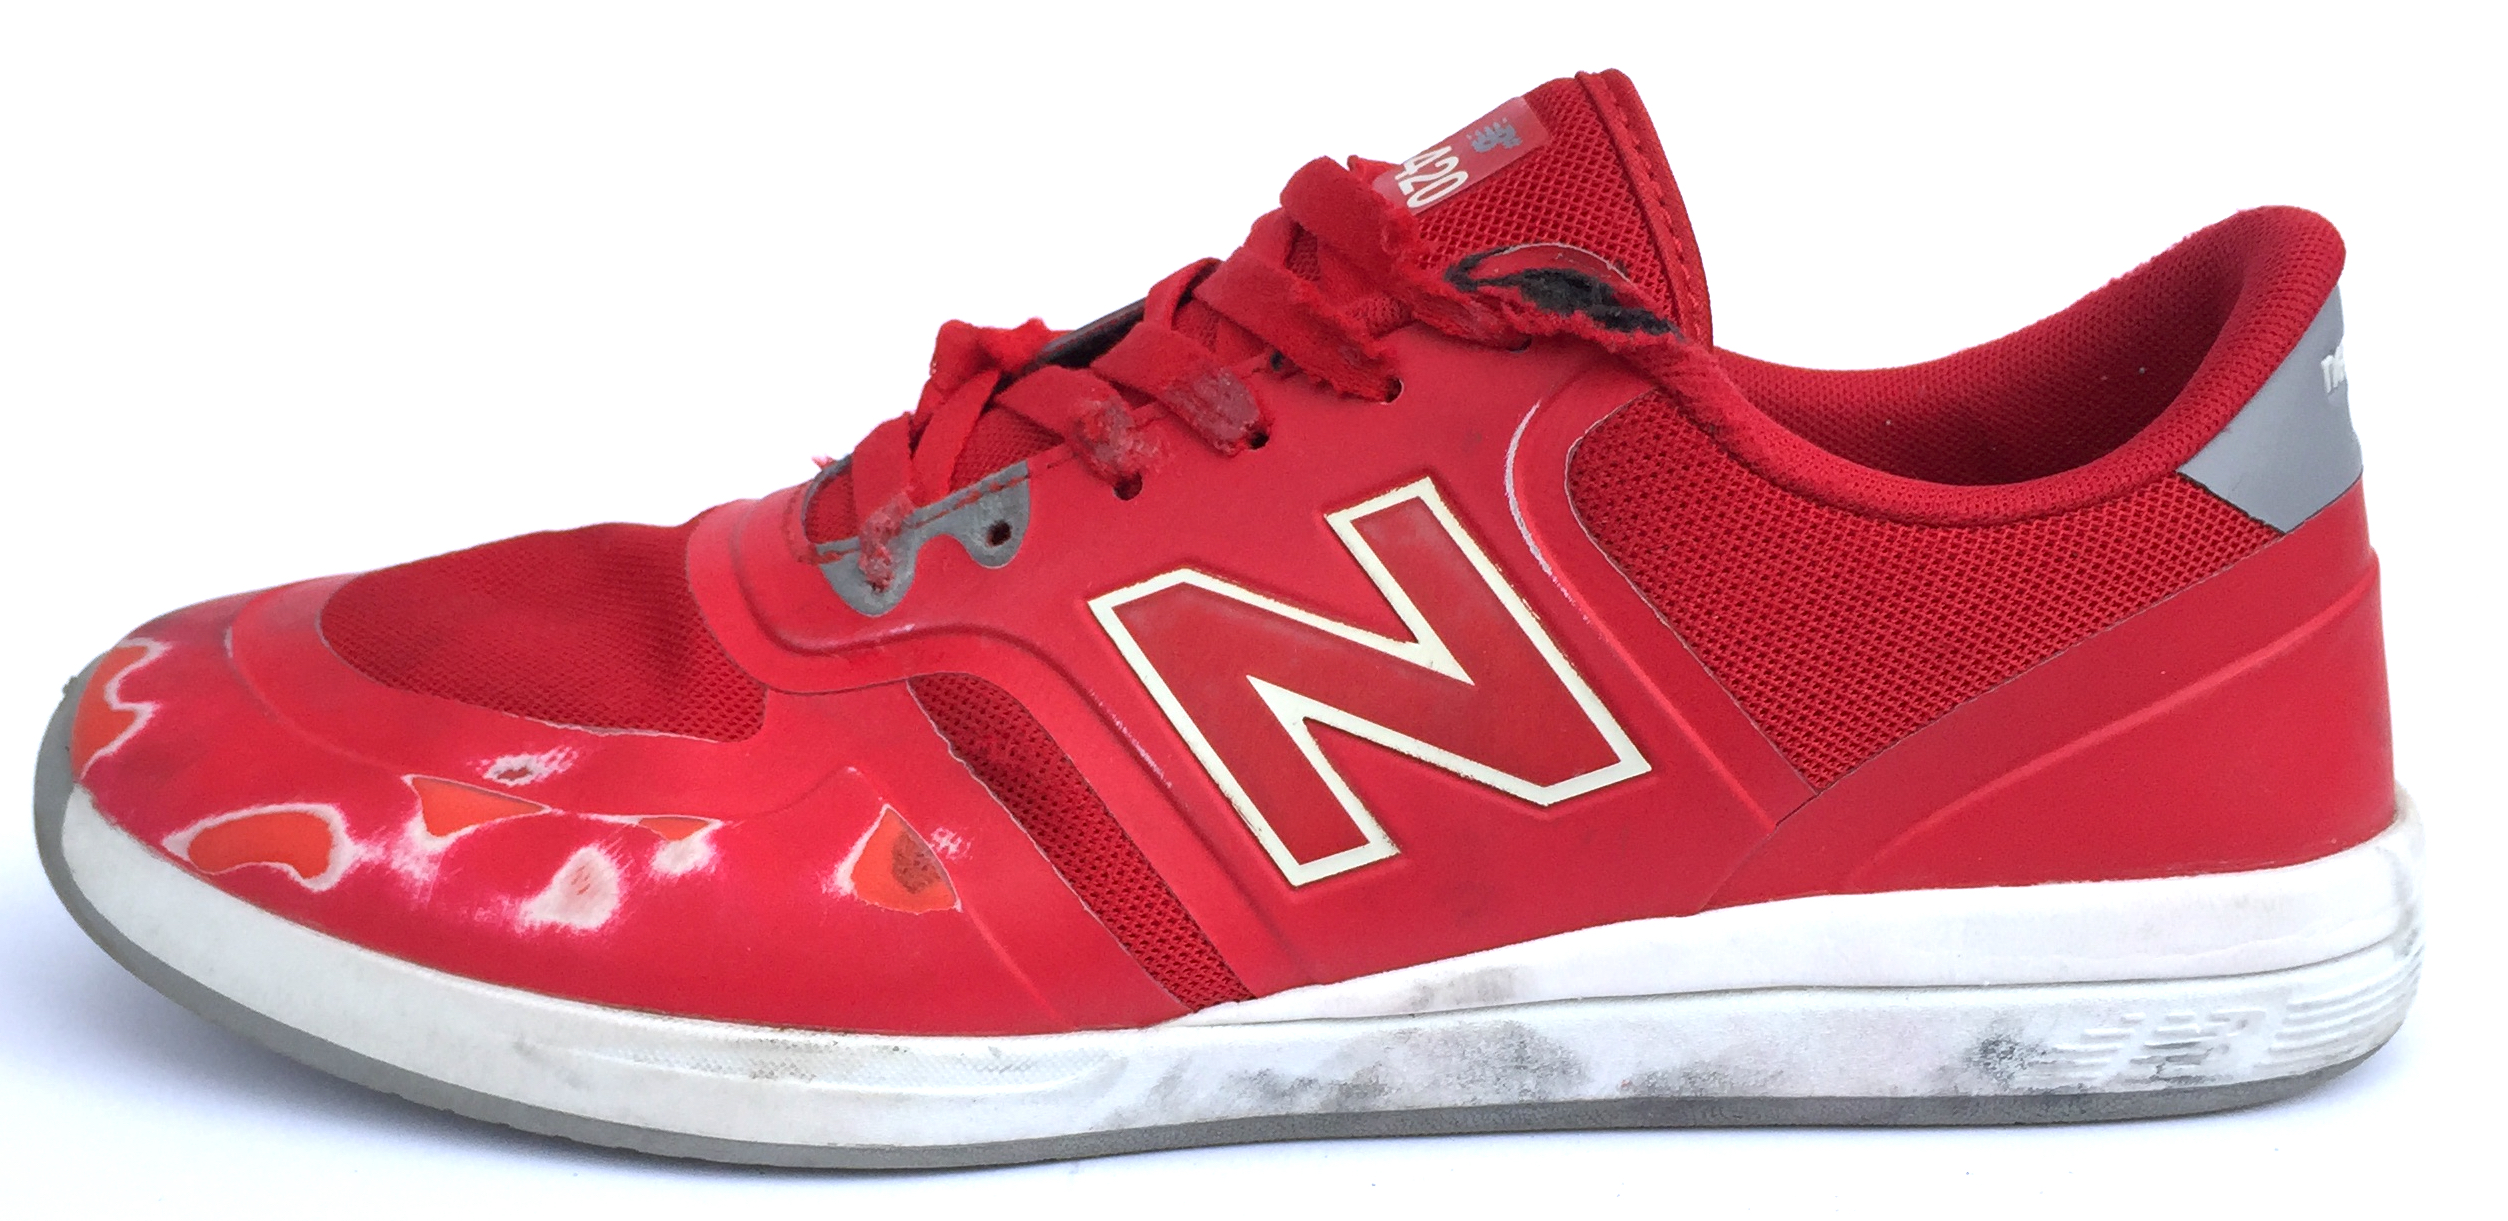 New Balance Numeric 420 - Weartested